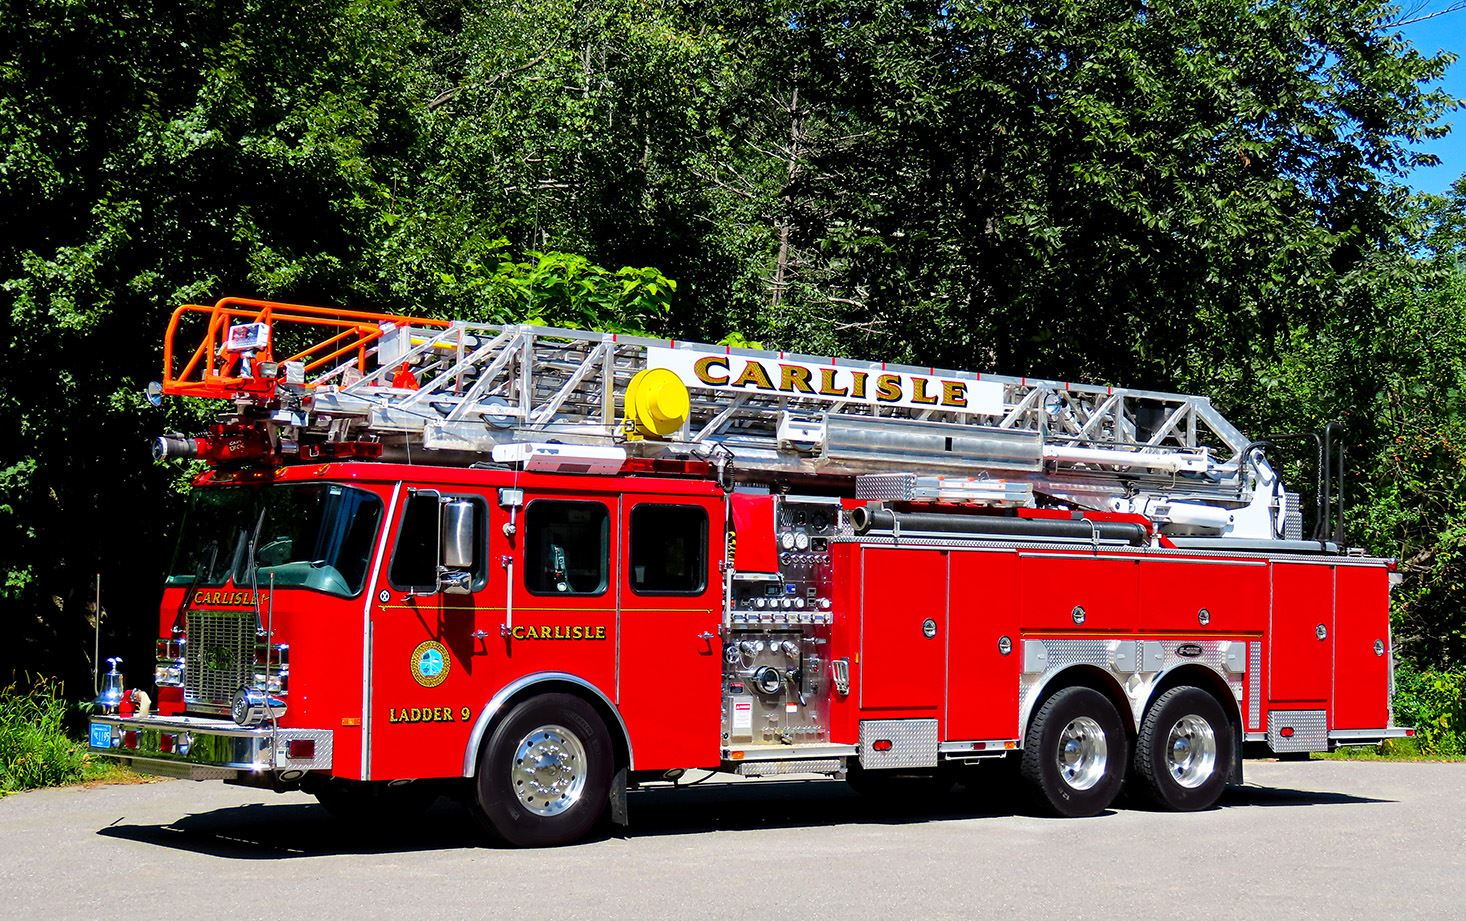 Carlisle Ladder 9